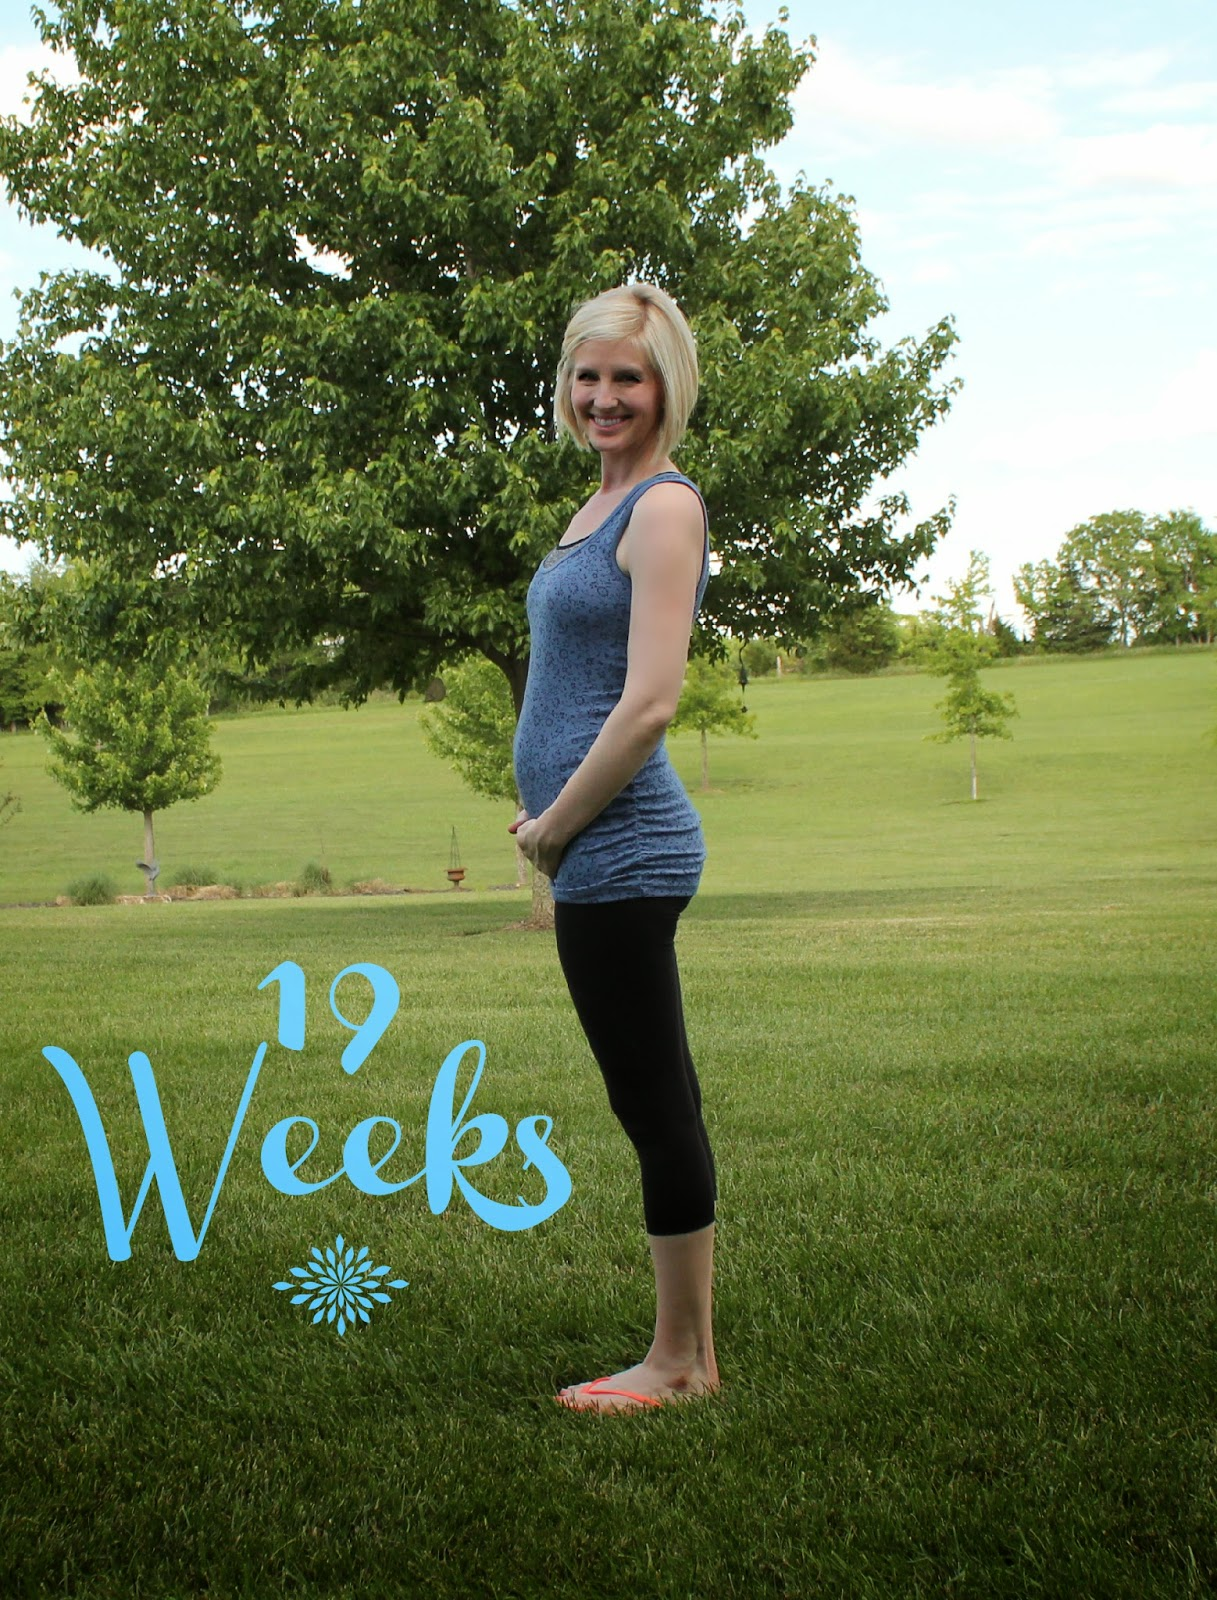 19 Weeks…Better Late than Never?